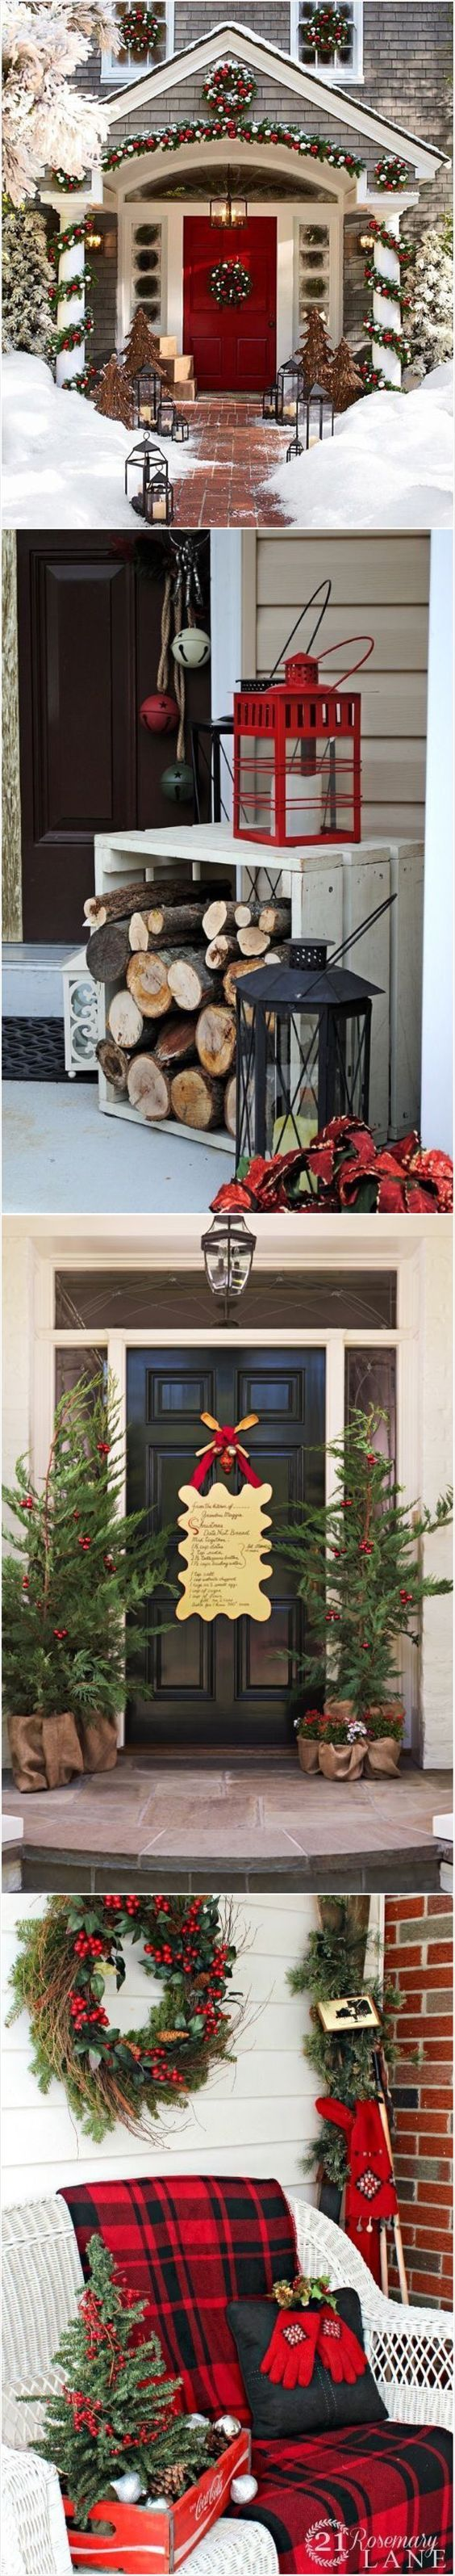 Awesome ways for You to Decorate your Outdoors for Christmas